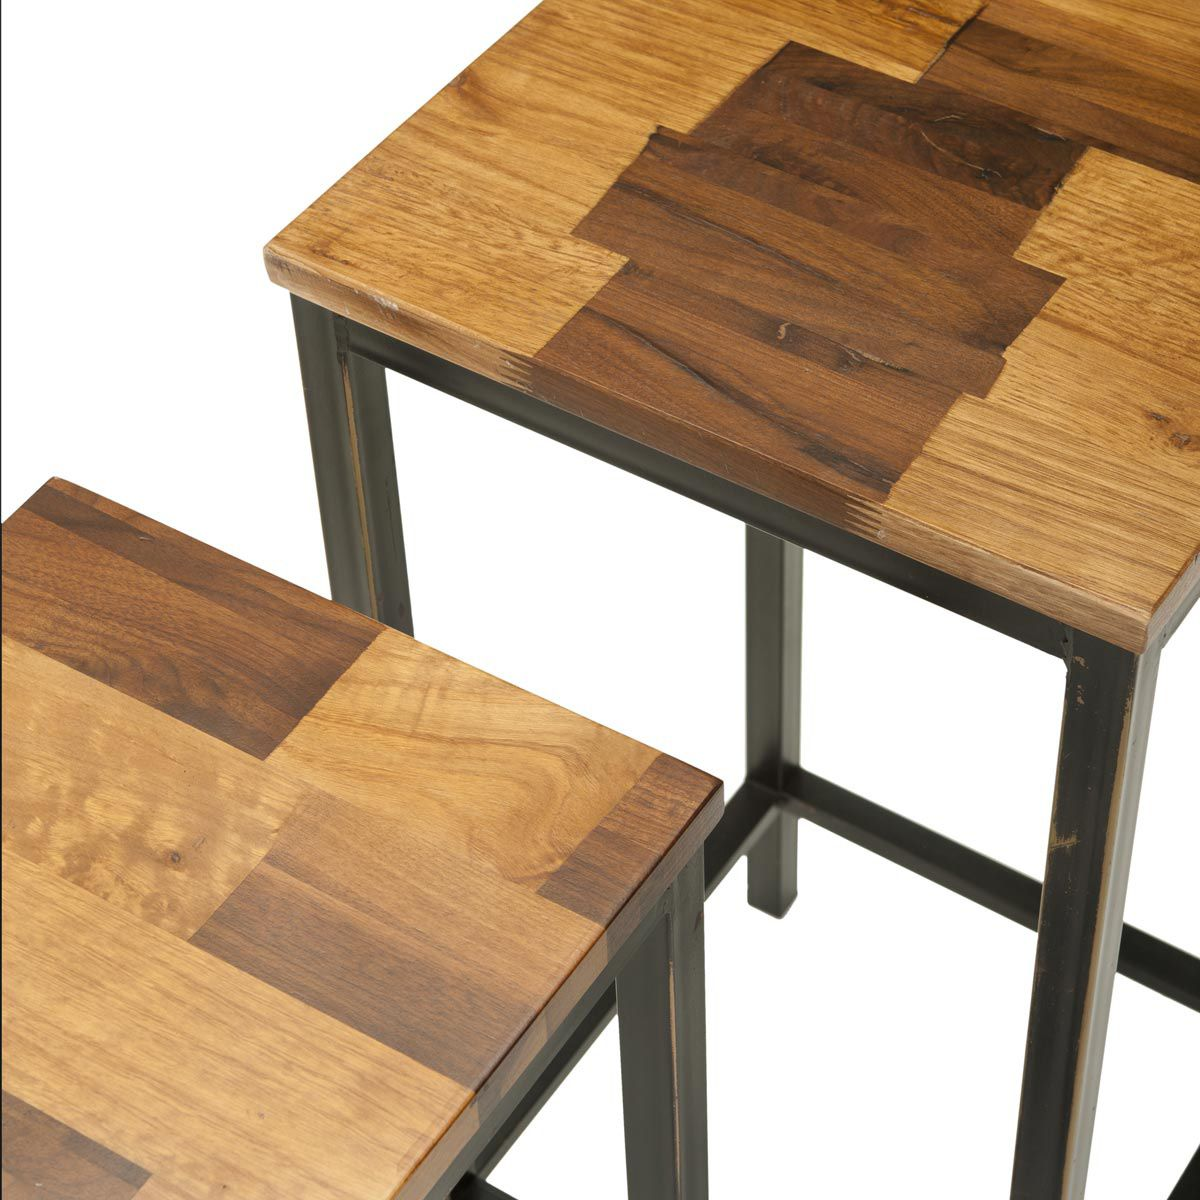 parquet nesting tables set dotandbo style accent table target dot furniture and decor for the modern lifestyle tablesnesting contemporary edmonton pier dining chairs low side